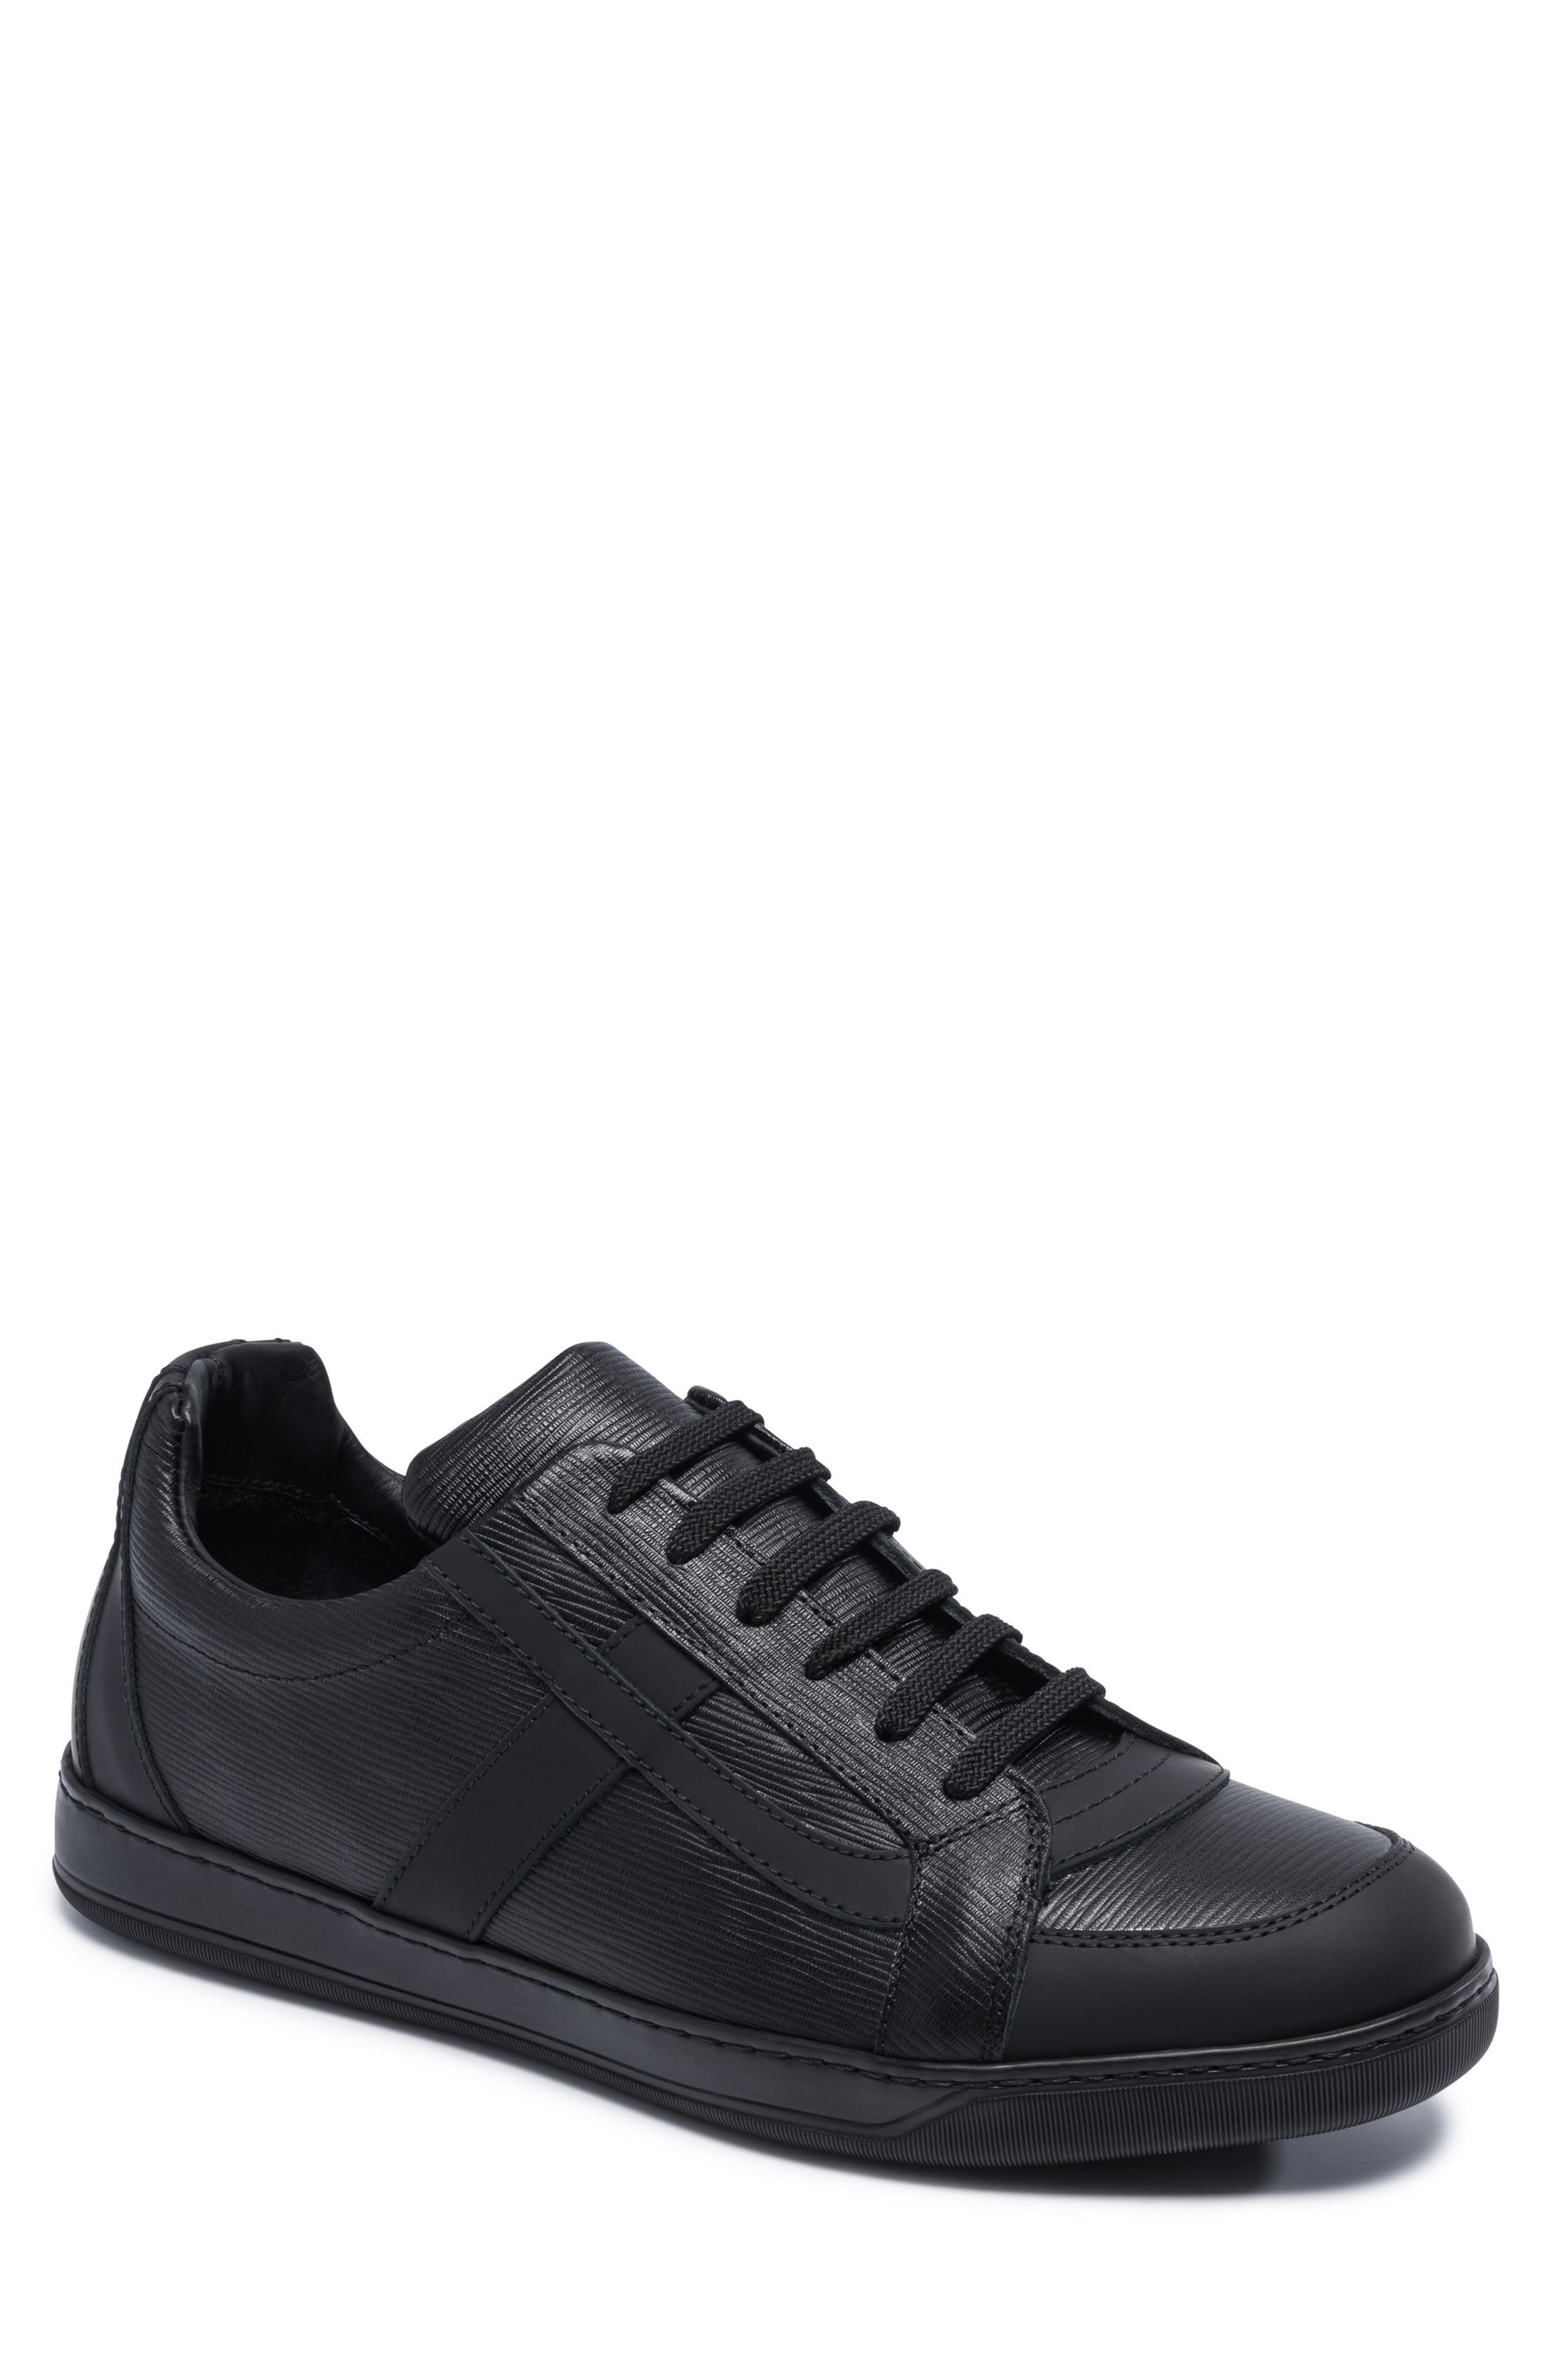 Novecento Sneaker,                         Main,                         color, Navy Leather